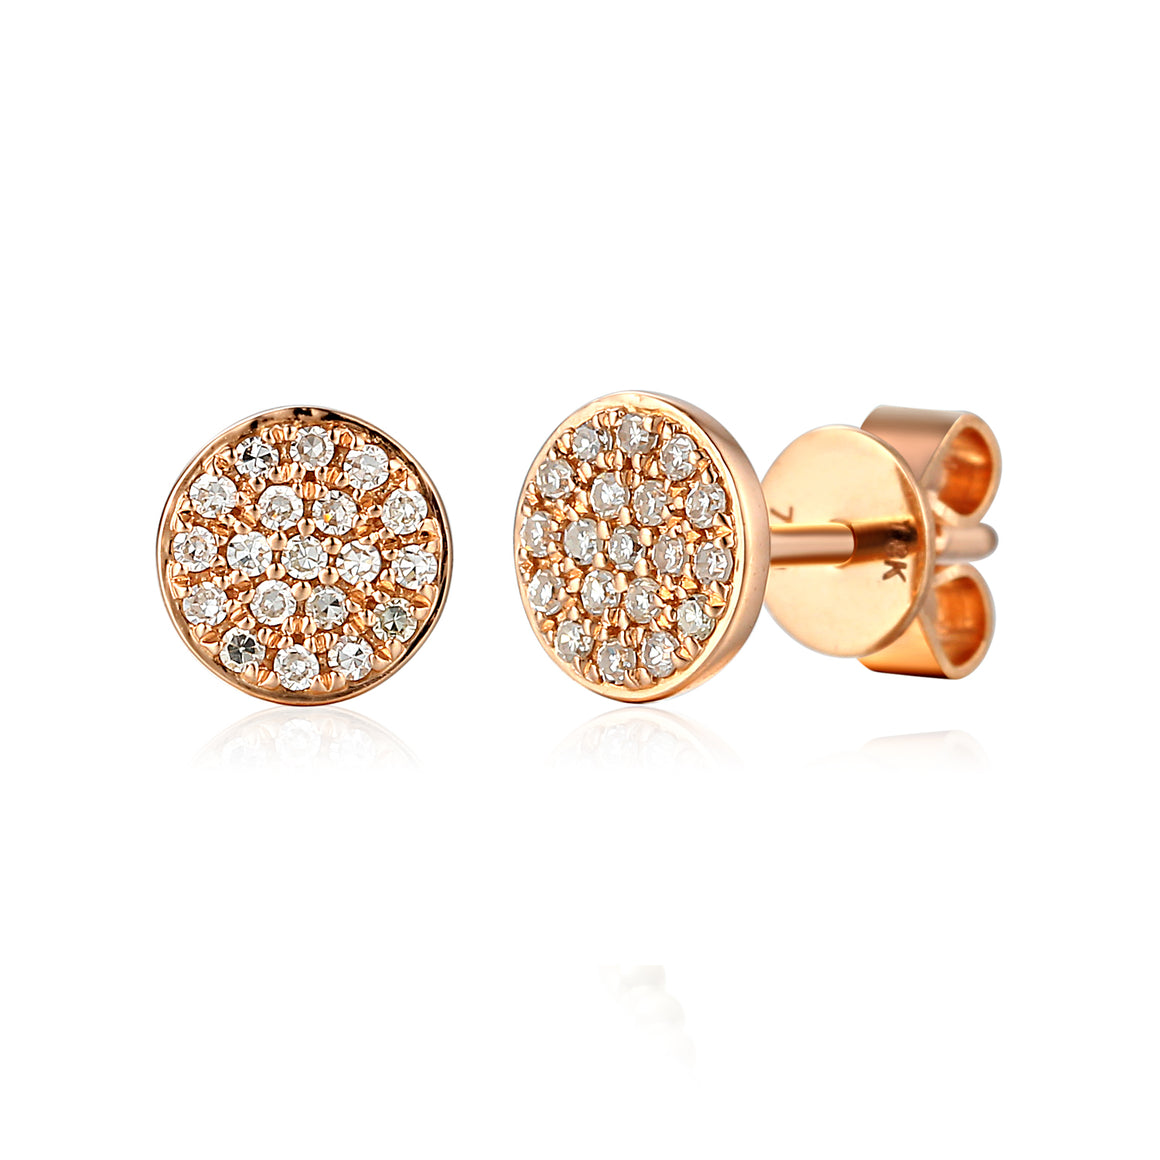 White Gold Pave Circle Geometric Stud Earrings